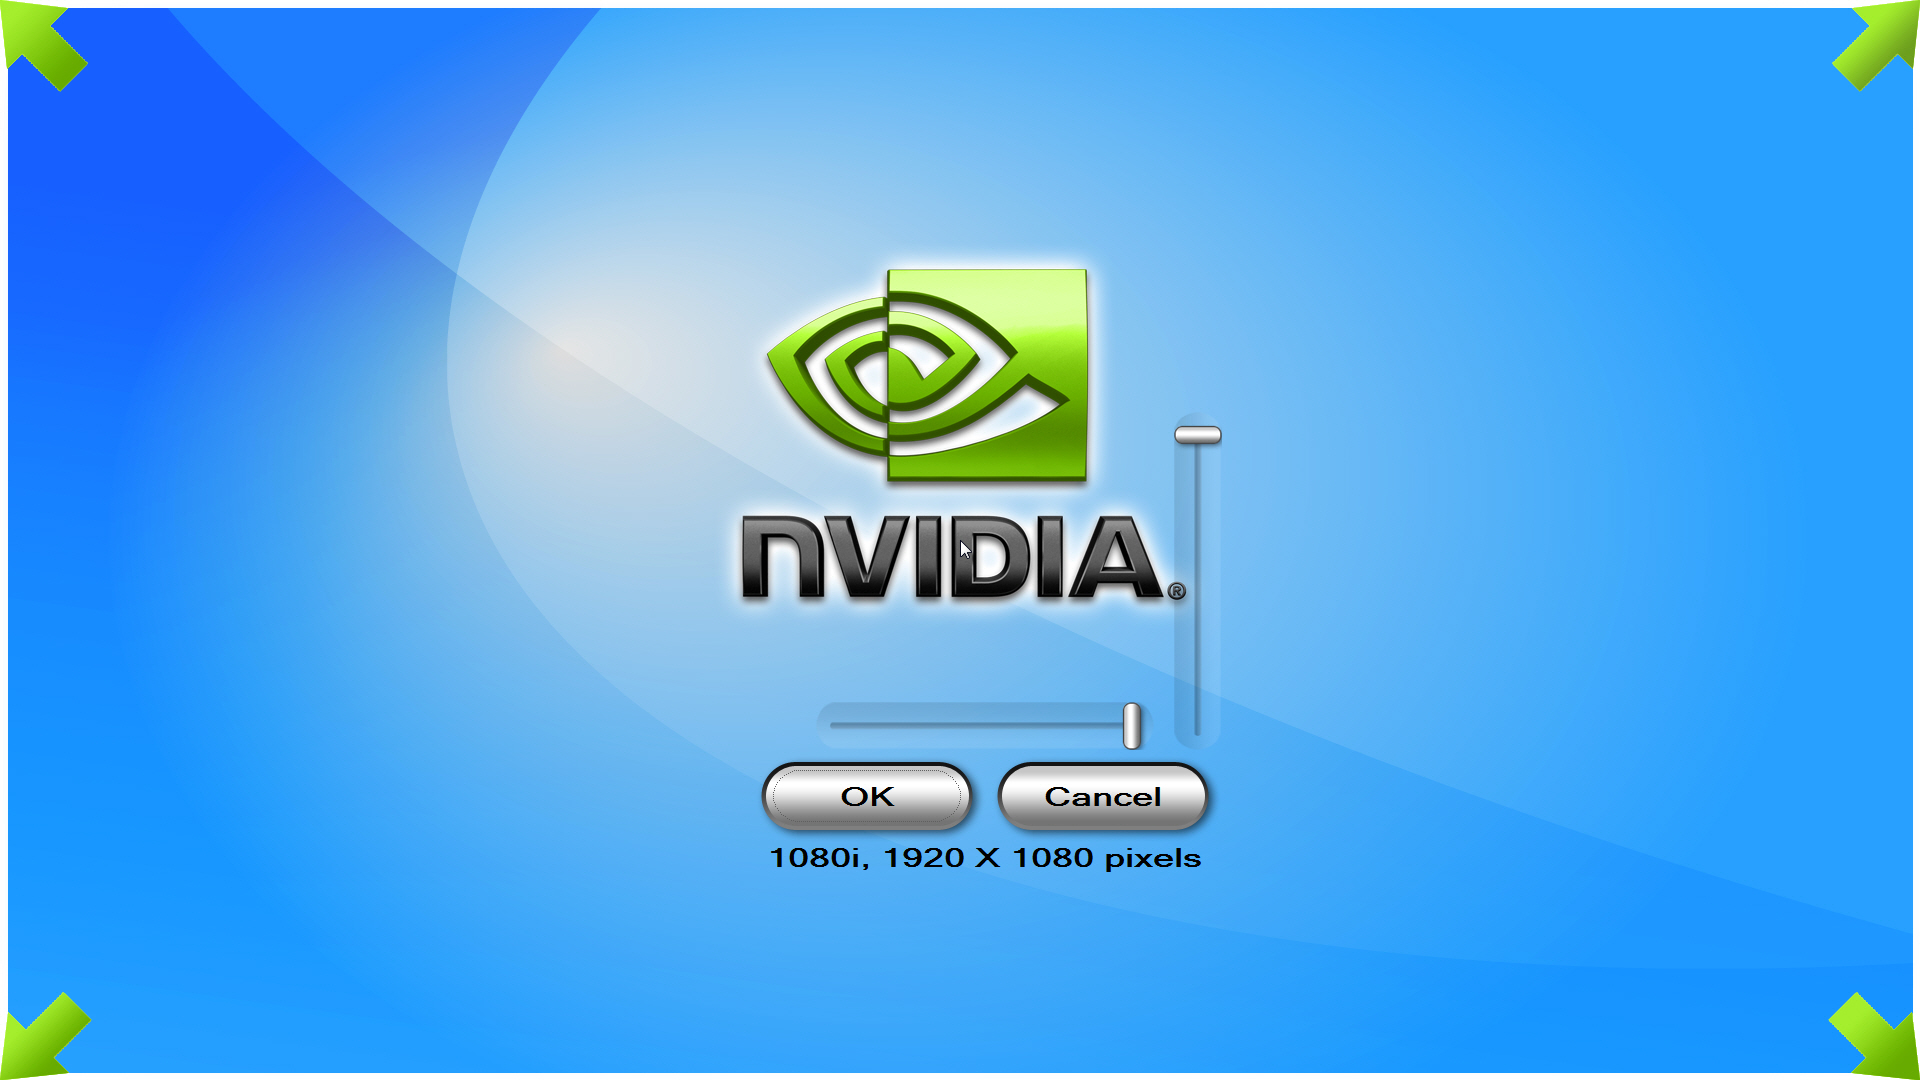 How do I setup my NVIDIA based graphics card to work with my